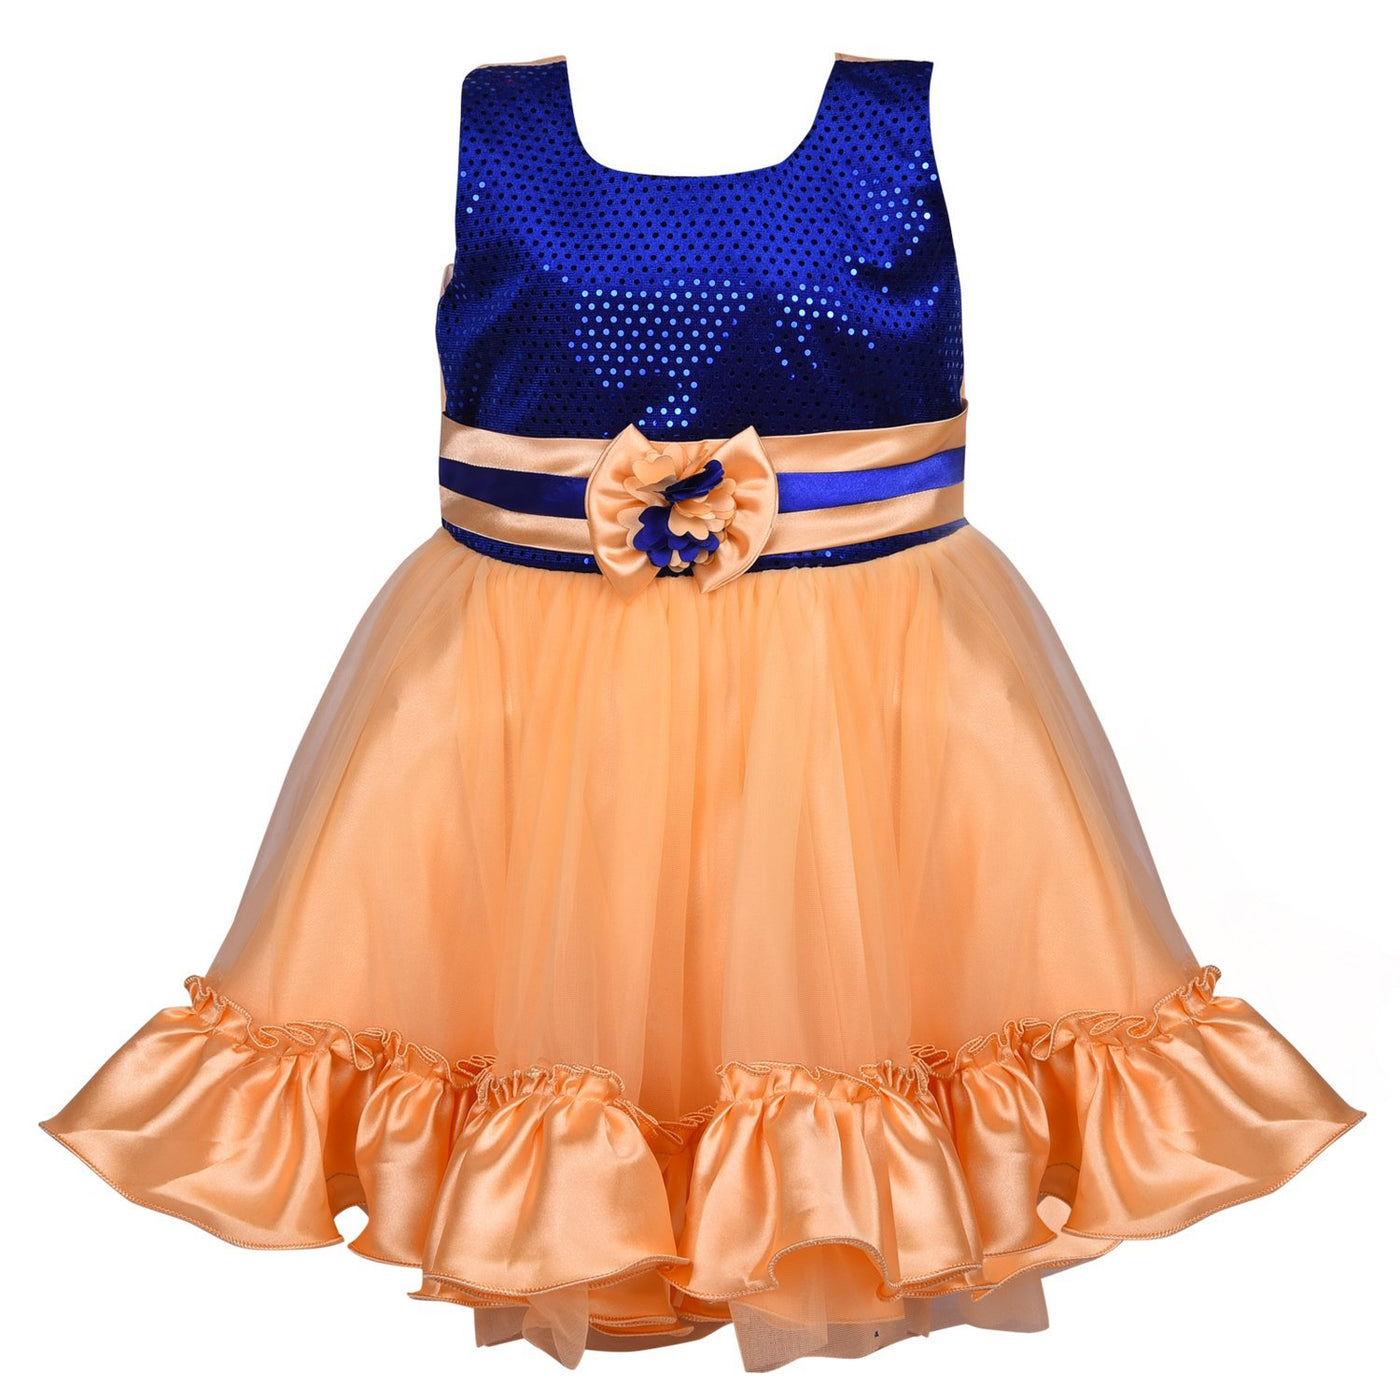 874c8c4ea Baby Girls Party Wear Frock Dress DN fr130bge - Wish Karo Dresses ...